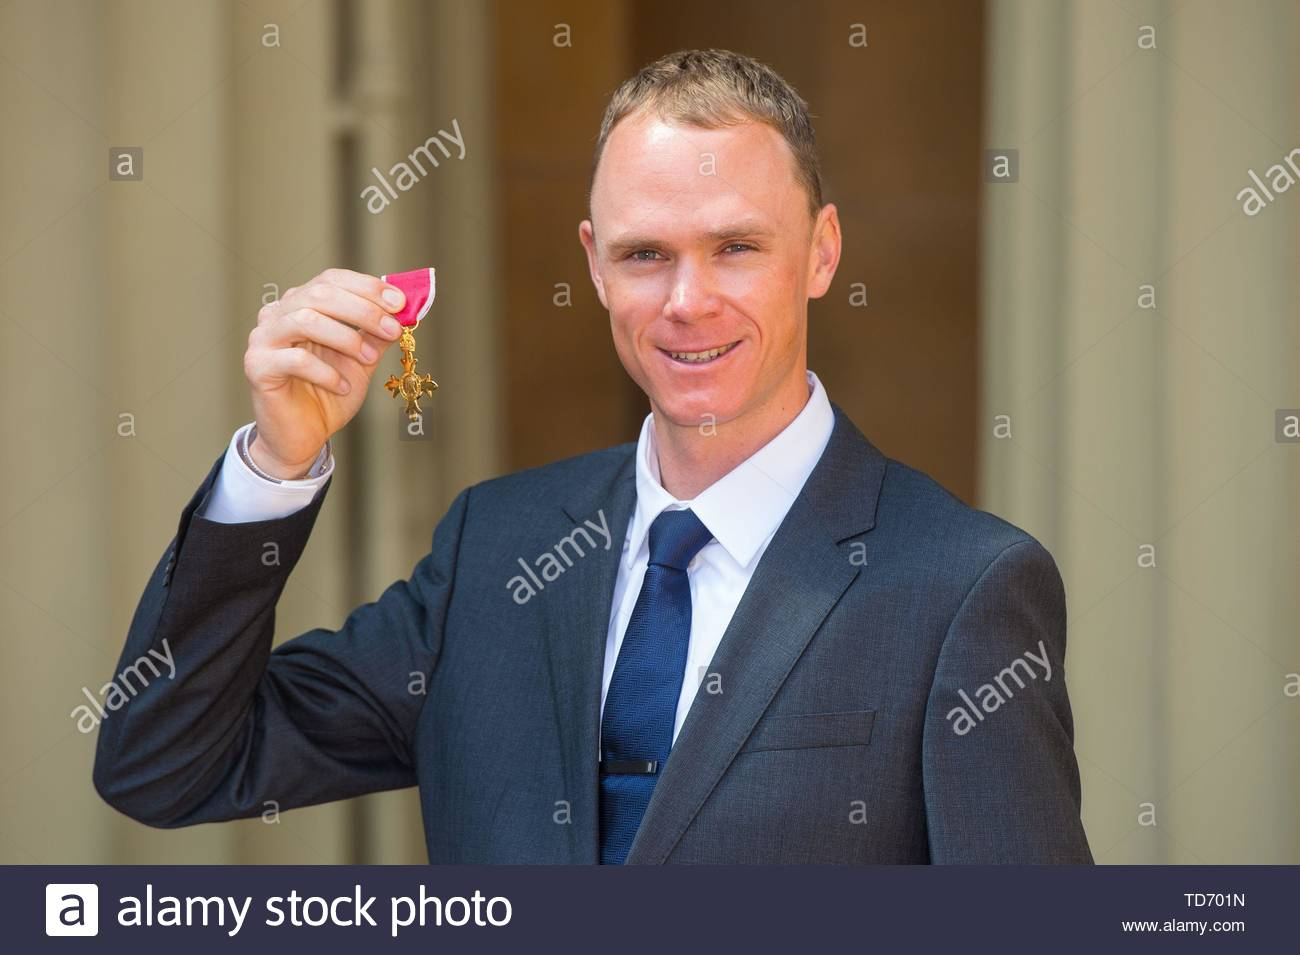 File photo dated 13-05-2016 of Double Tour de France winning cyclist Chris Froome after he received an OBE from the Duke of Cambridge at an investiture ceremony at Buckingham Palace, London. - Stock Image